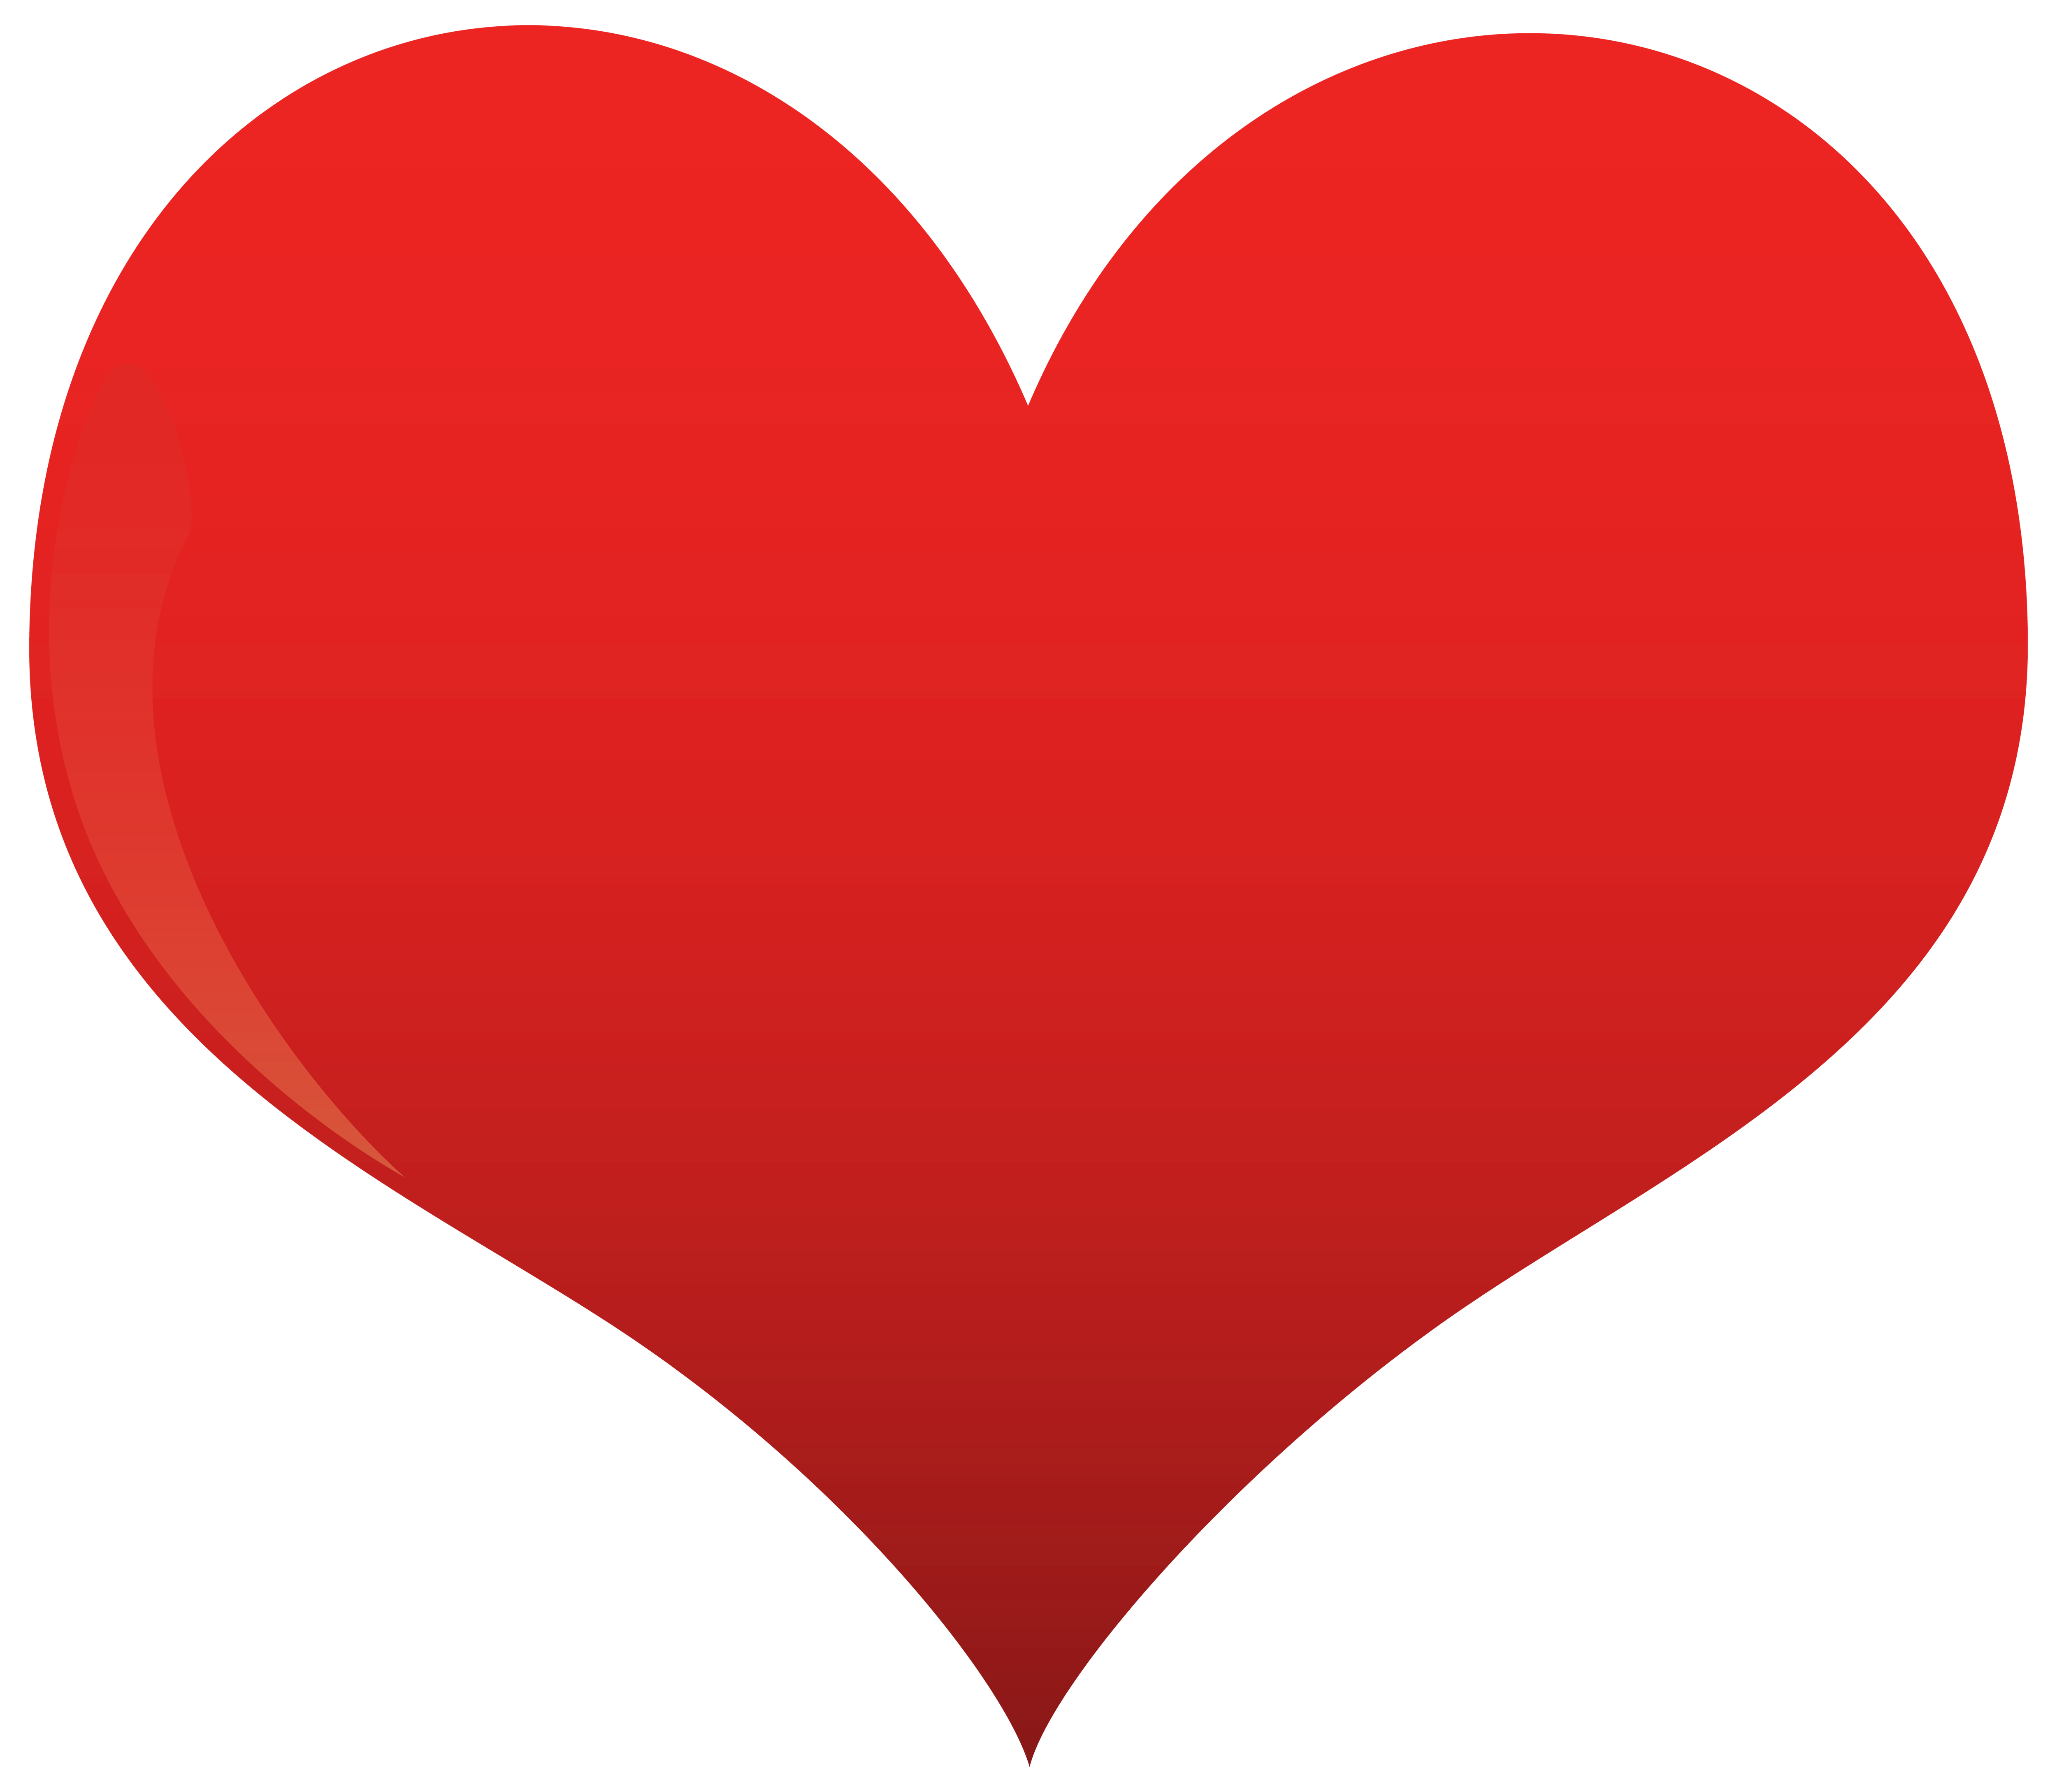 Classic heart clipart best. Line of hearts png